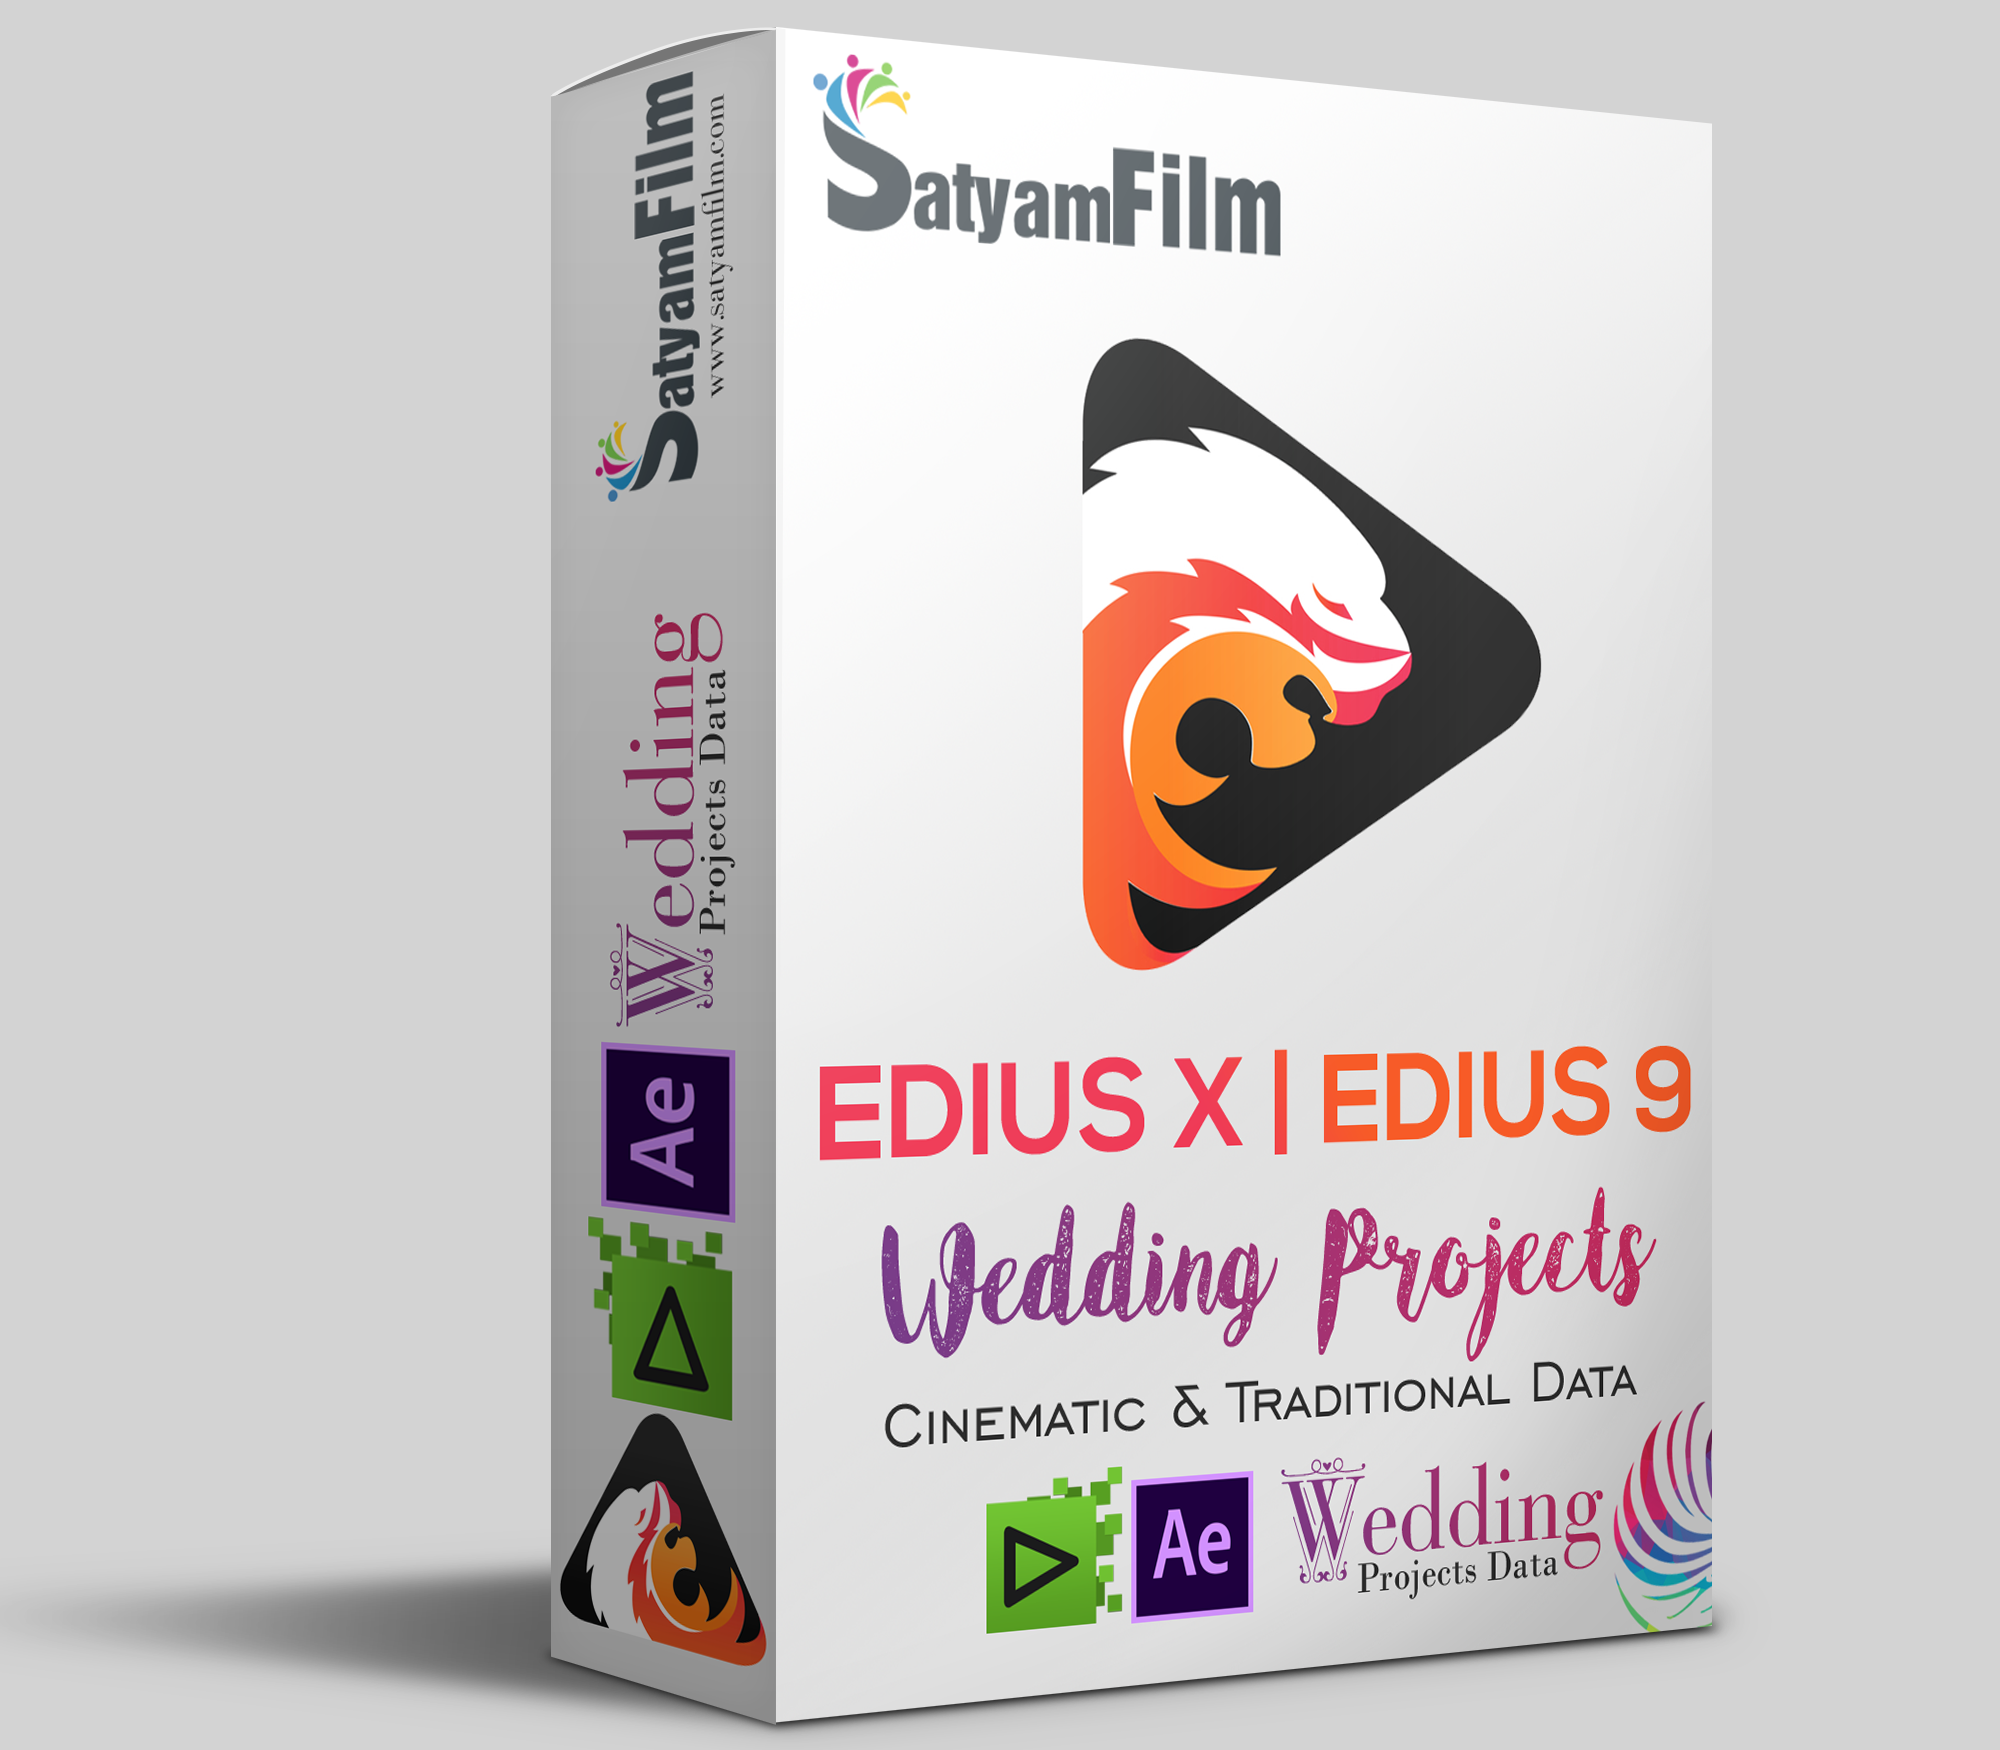 EDIUS X WEDDING PROJECT, EDIUS PROJECT FREE DOWNLOAD, EDIUS X, EDIUS 9, EDIUS TITLE PROJECT, EDIUS DONGLE, EDIUS DATA 2021, EDIUS X PRO, VIDEO MIXING, VIDEO MIXING DATA